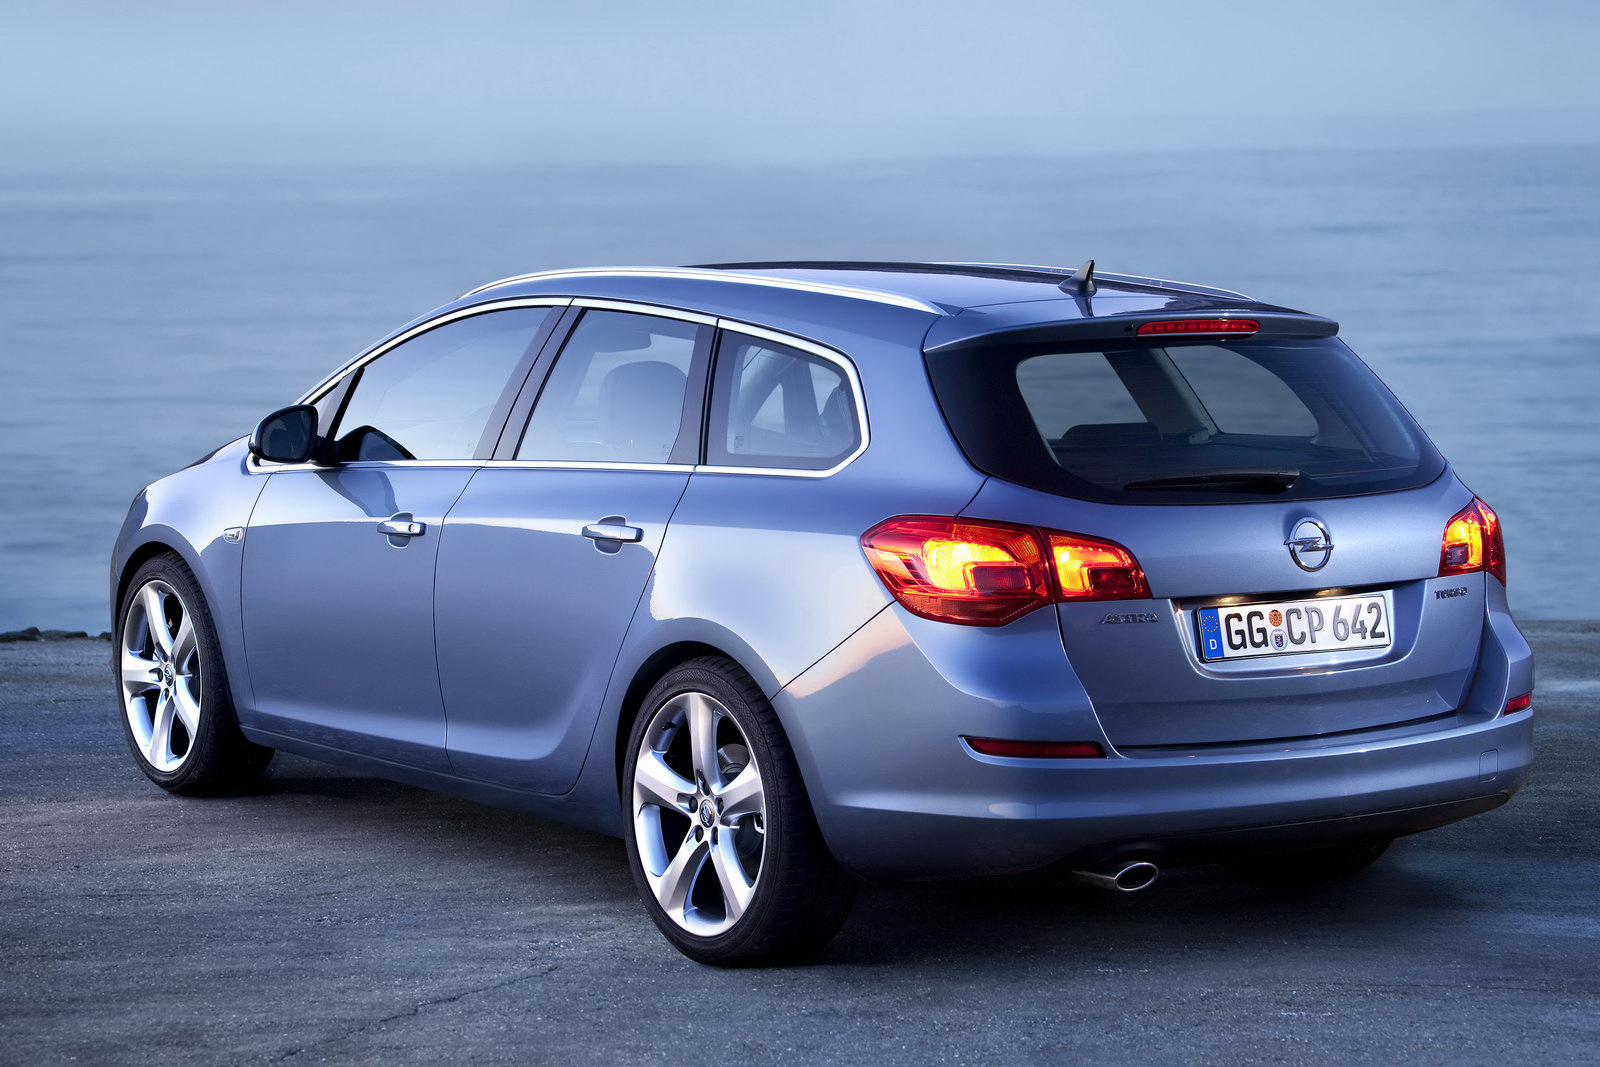 2013 Opel Astra J Sports Tourer Pictures Information And Specs Hyundai Santa Fe Fuse Box Images 9